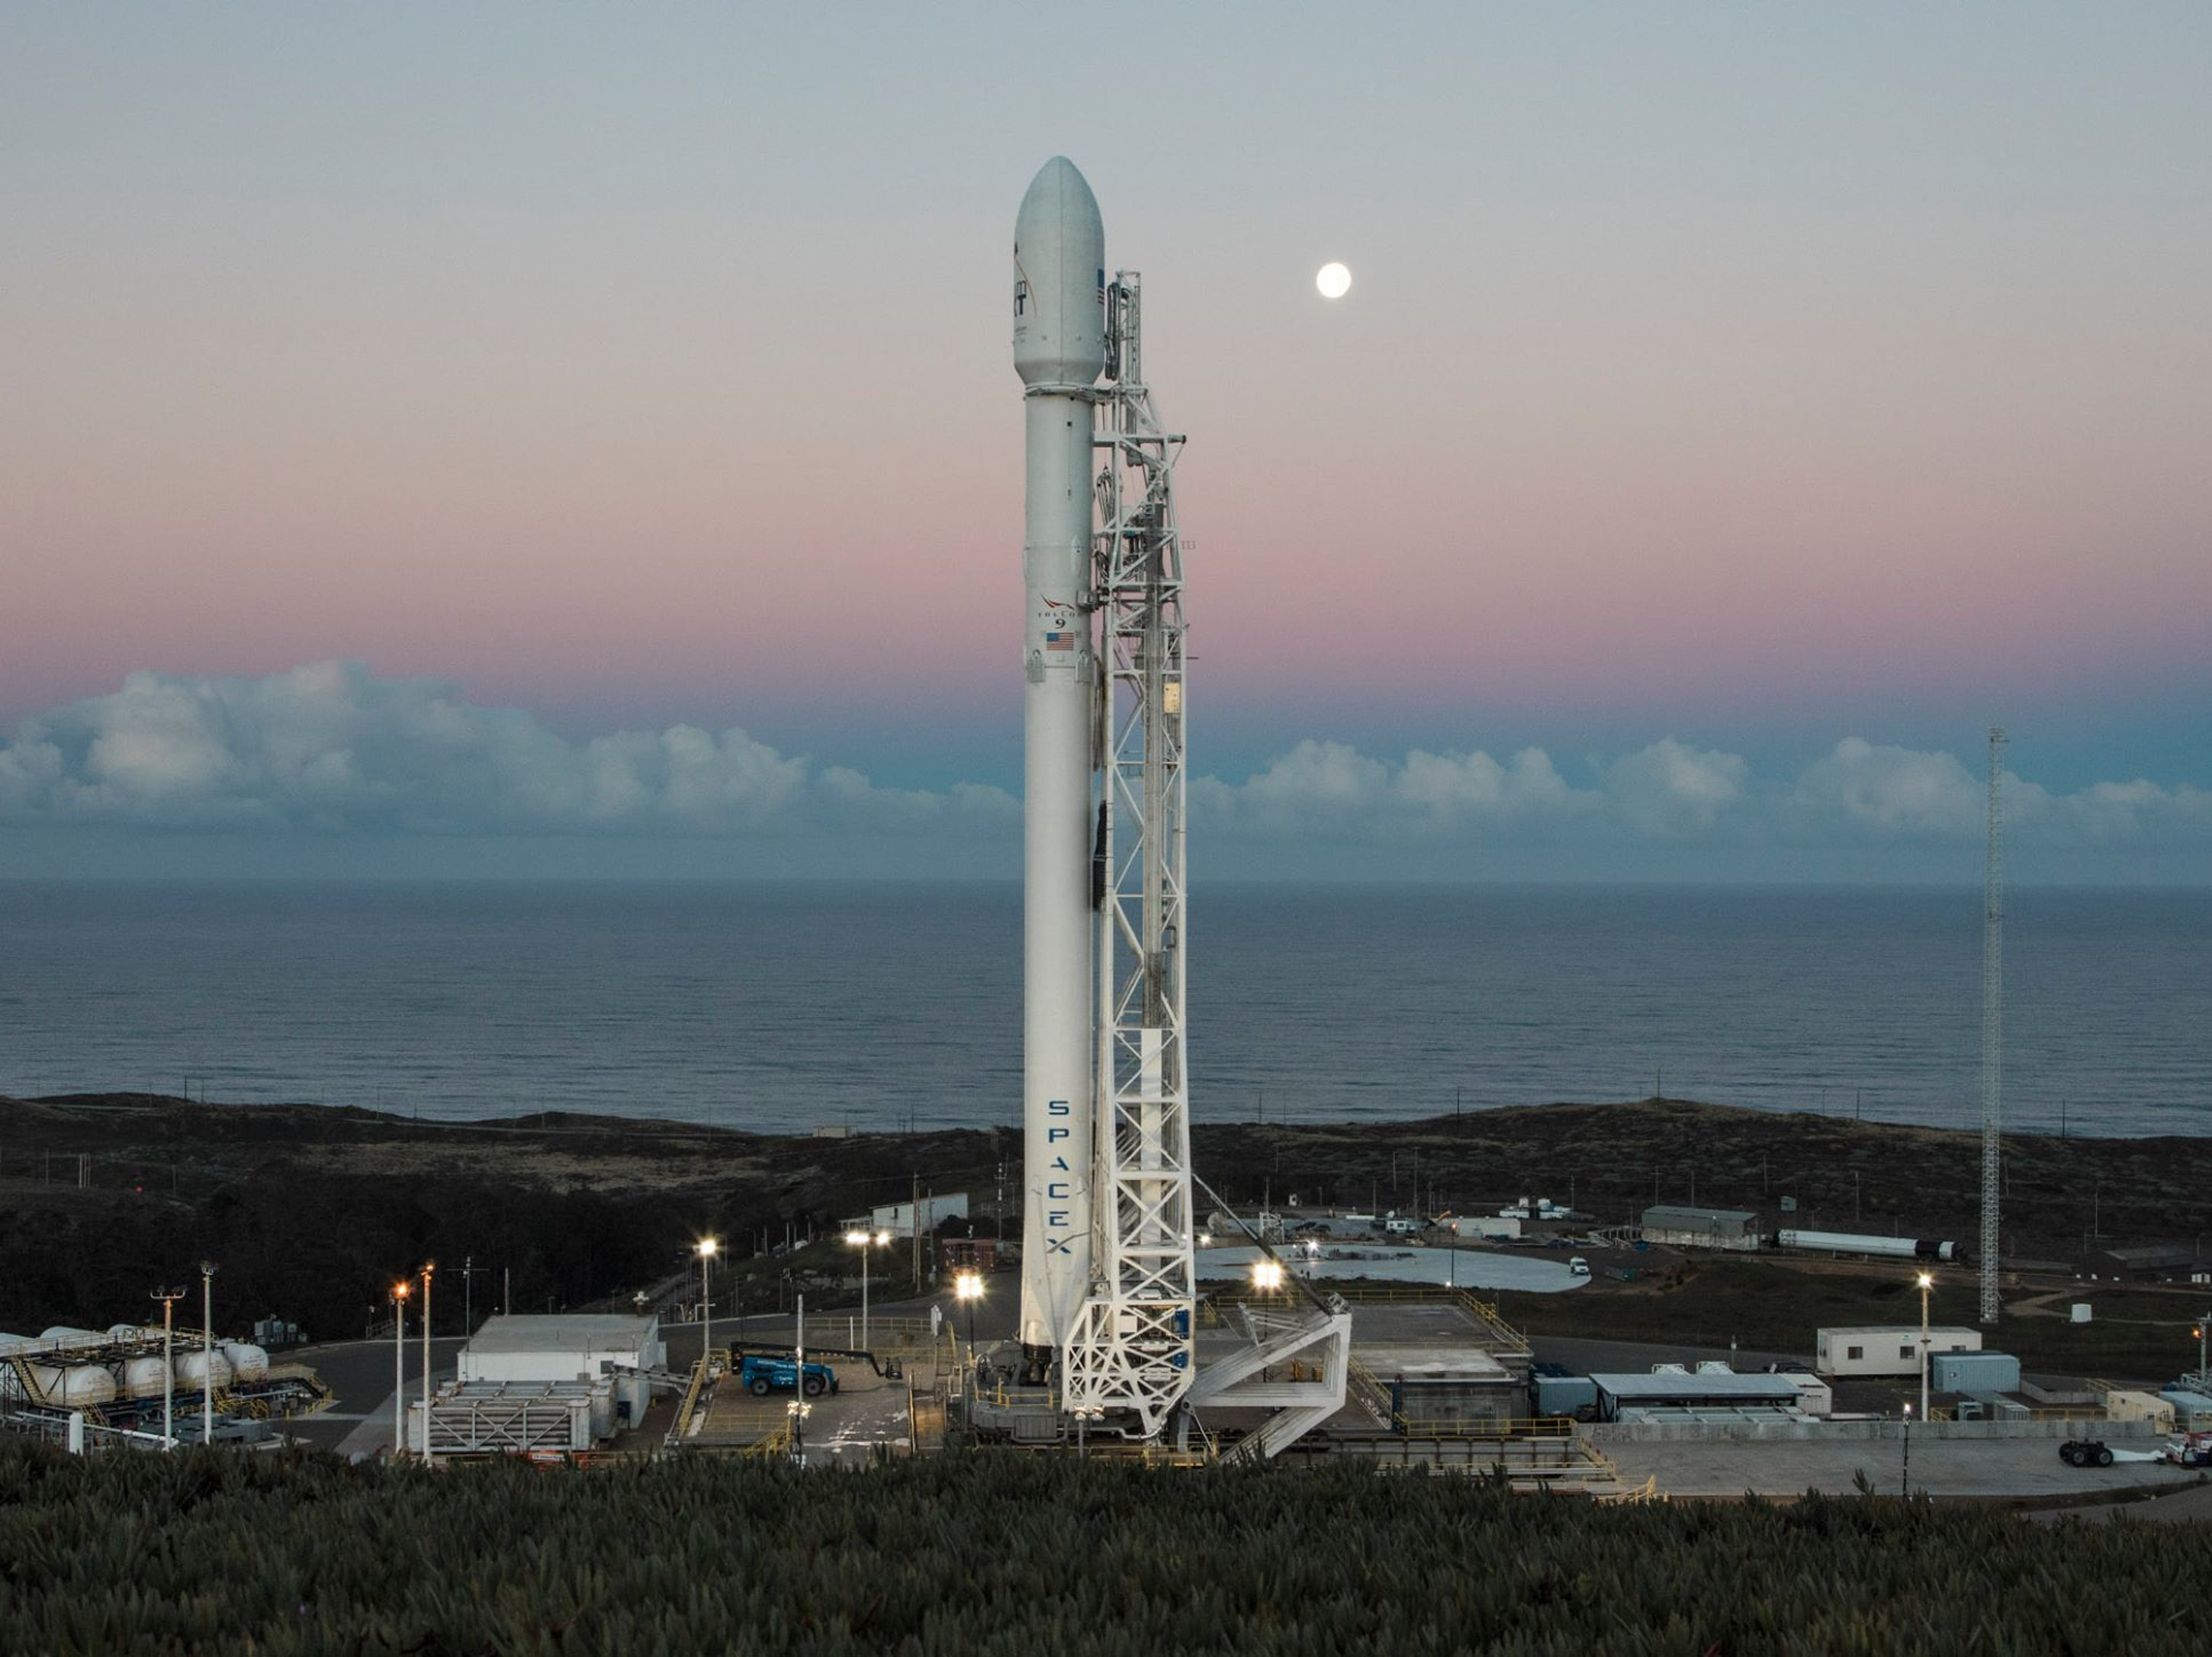 SpaceX posted a picture of its Falcon 9 rocket, which will launch Saturday and deliver satellites for satellite communication company Iridium.